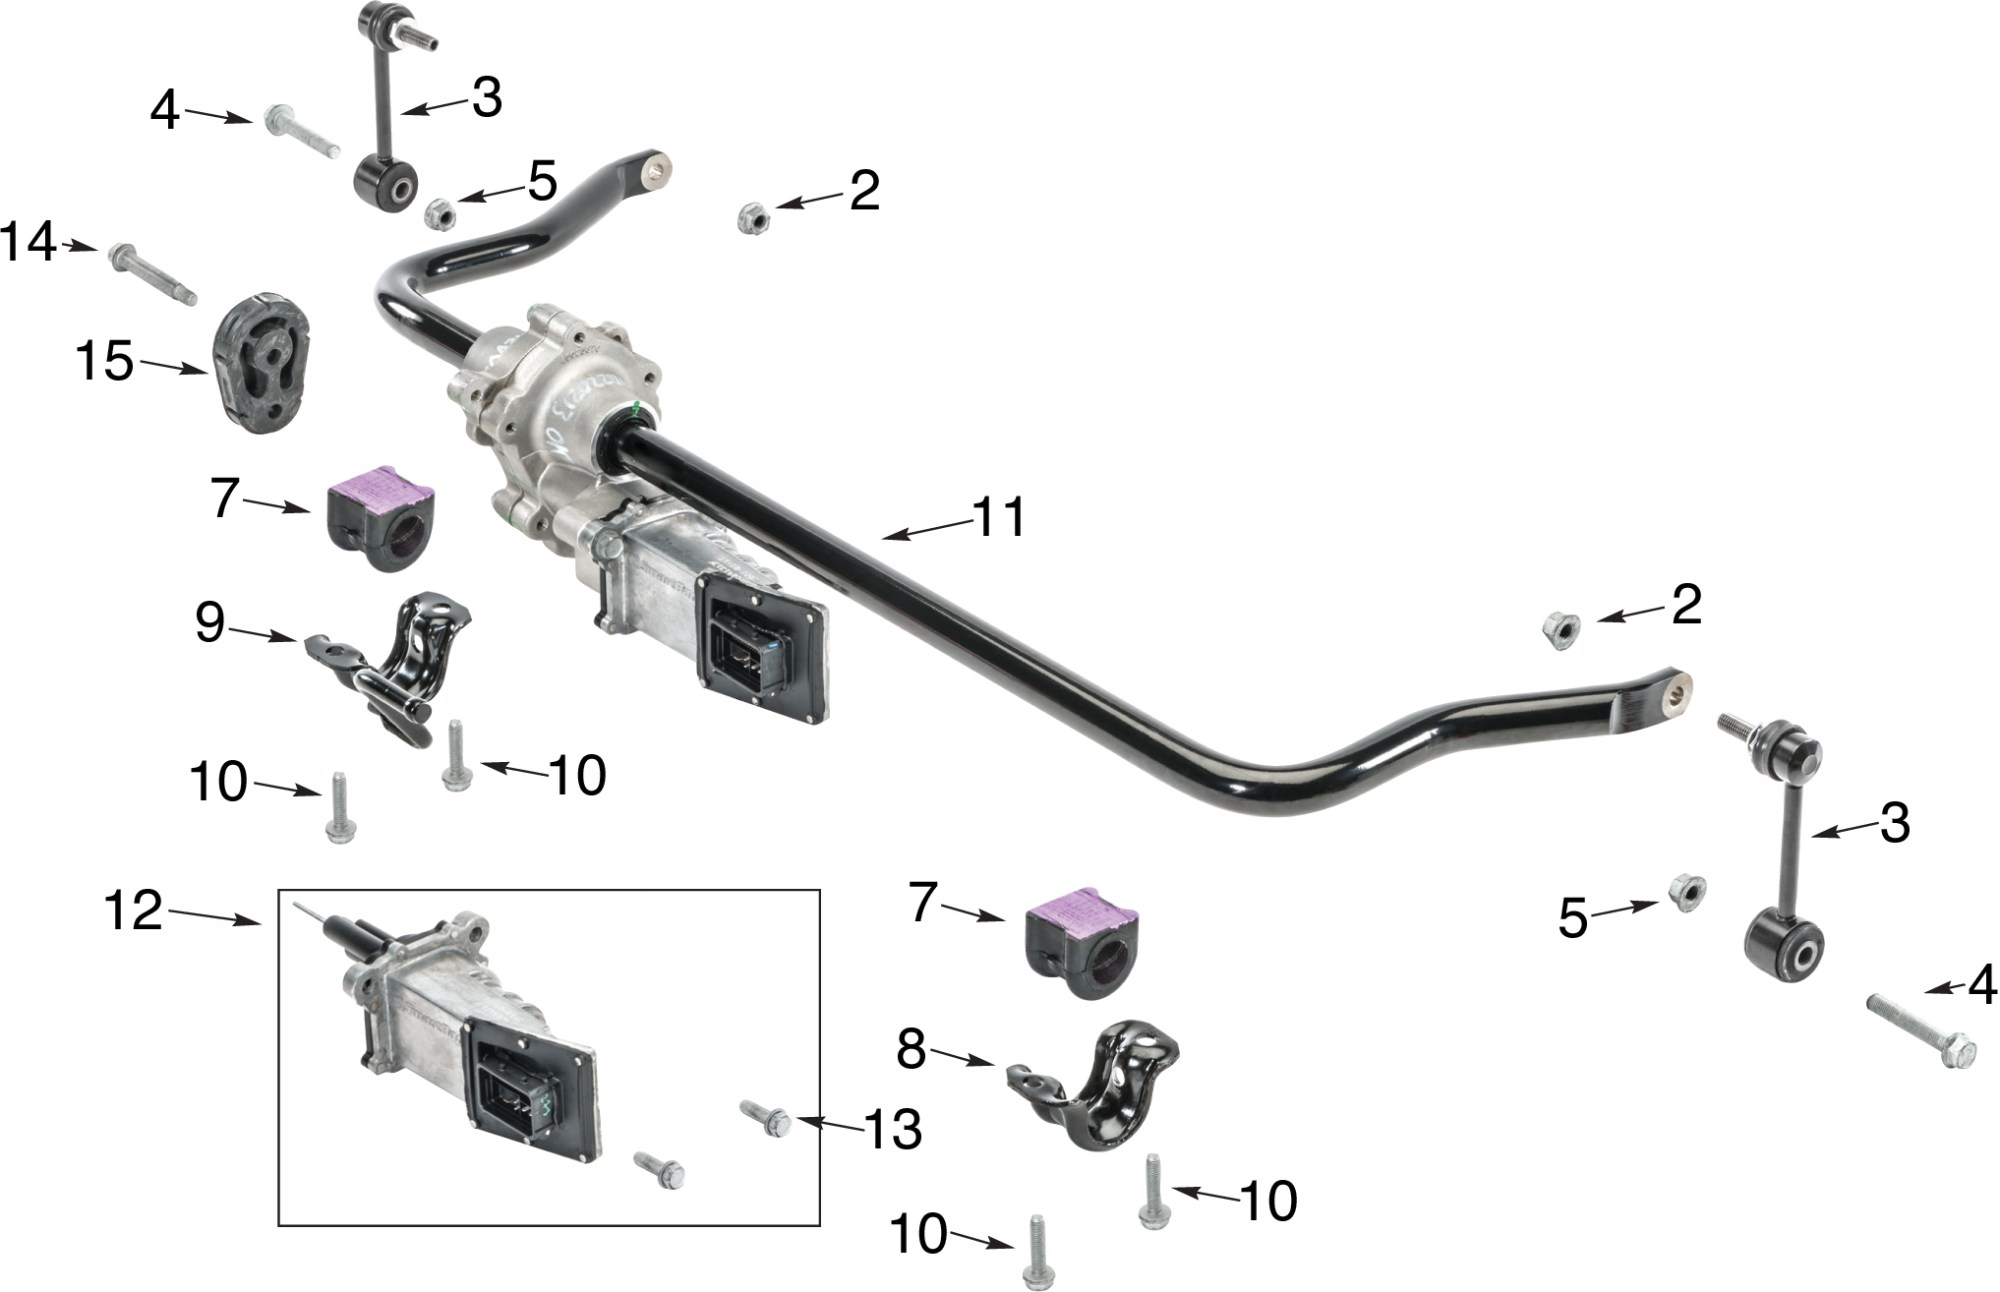 hight resolution of jeep wrangler jk front disconnect stabilizer bar parts